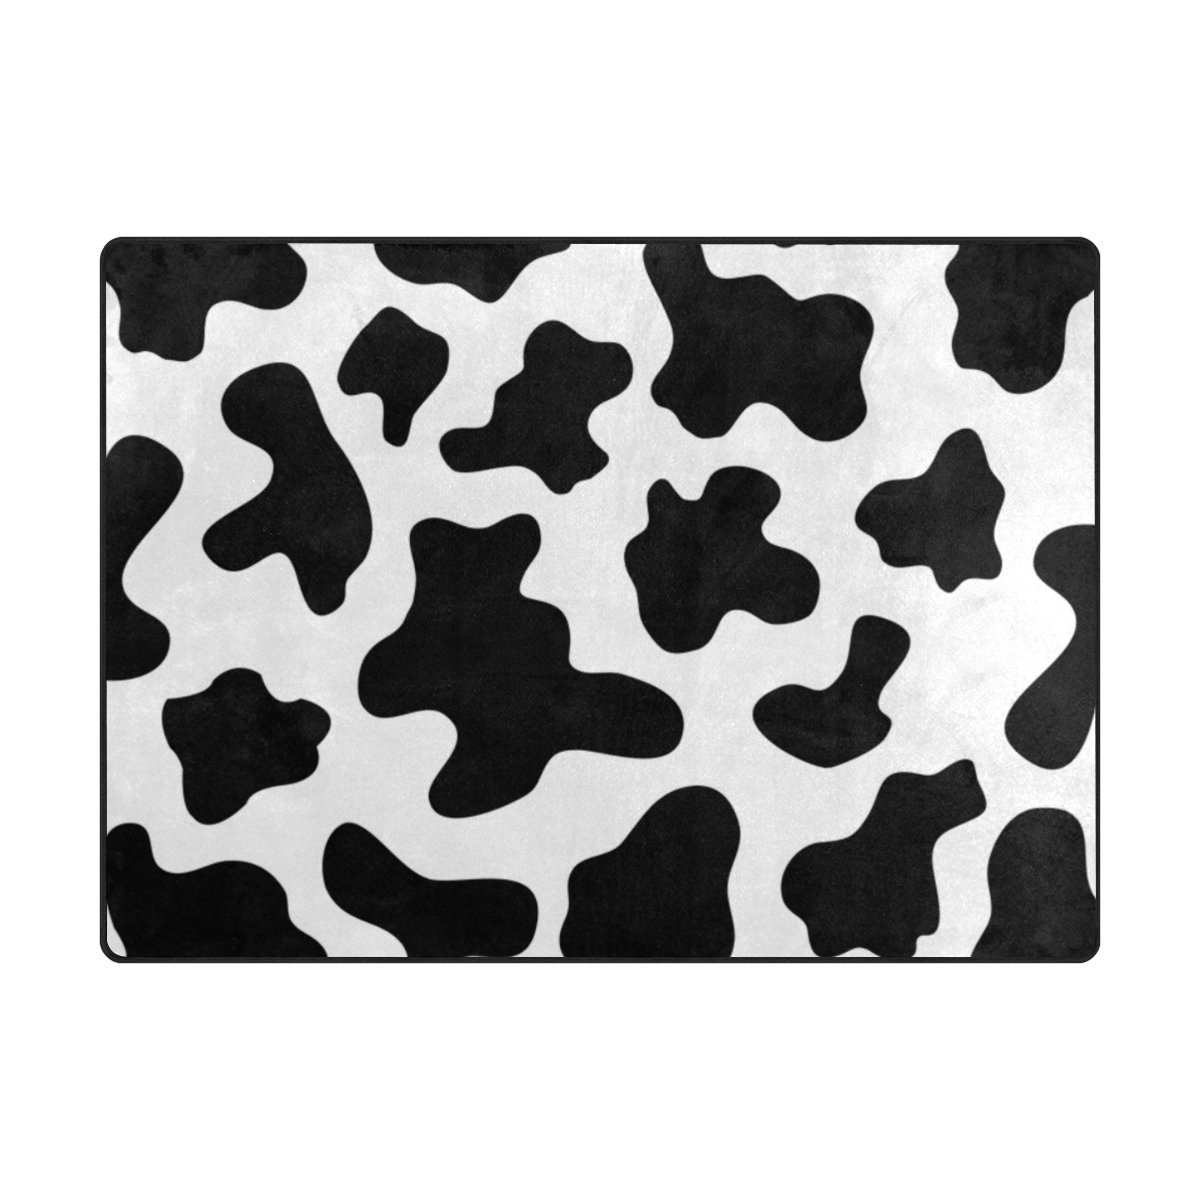 My Little Nest Black and White Cow Spot Kids Cartoon Area Rug 4'10'' x 6'8'' For Bedroom Dining Room Living Room Floor Mat Lightweight Carpet, Unique Anti Skid Indoor Outdoor Decor Soft Rug Carpets by My Little Nest (Image #1)